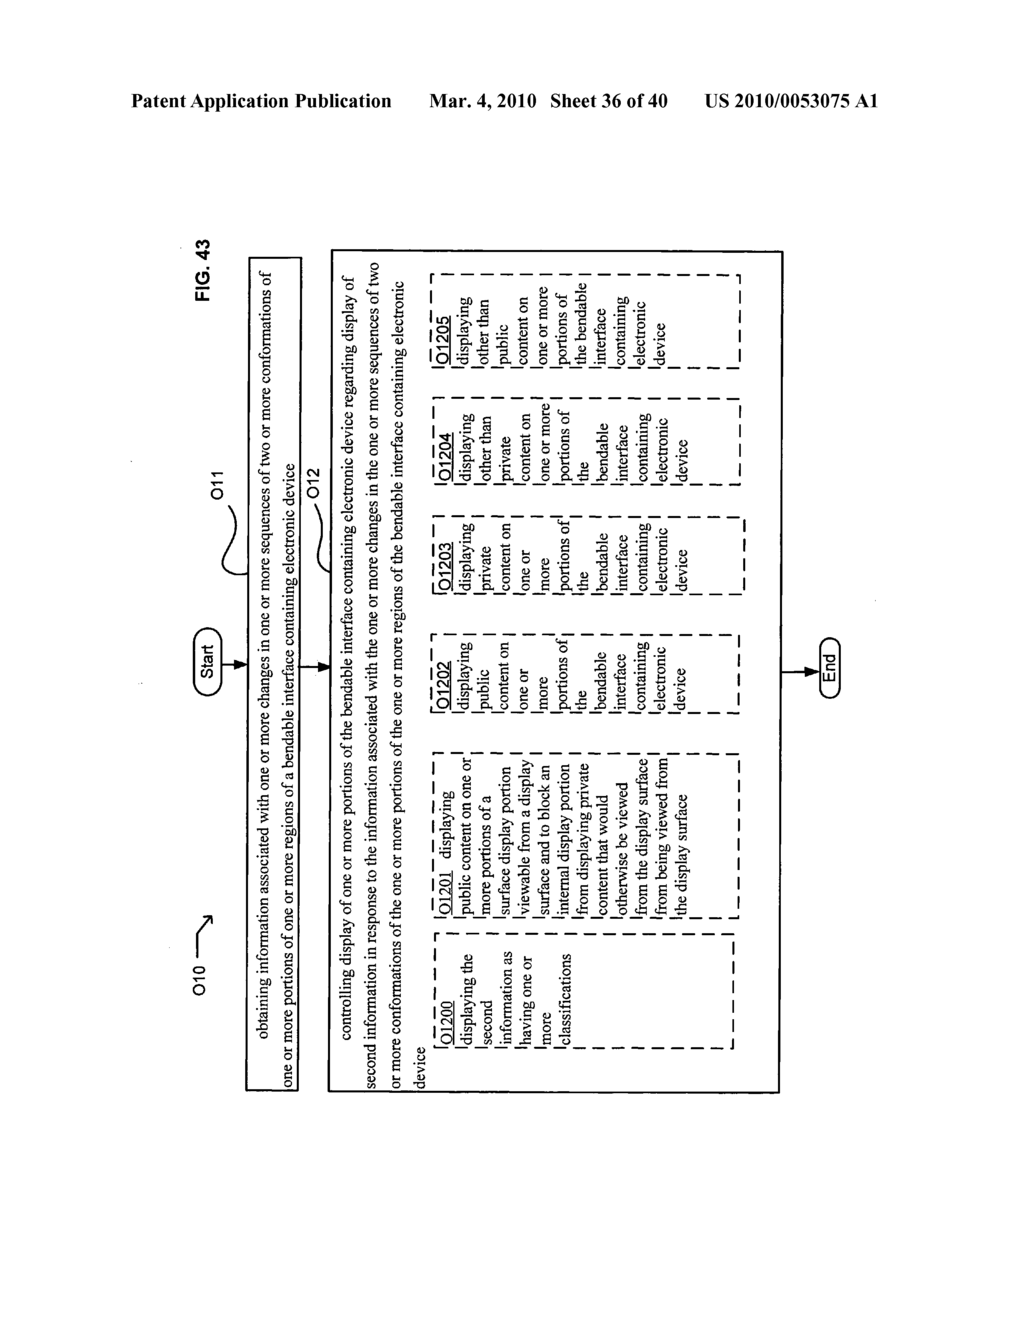 Display control based on bendable interface containing electronic device conformation sequence status - diagram, schematic, and image 38